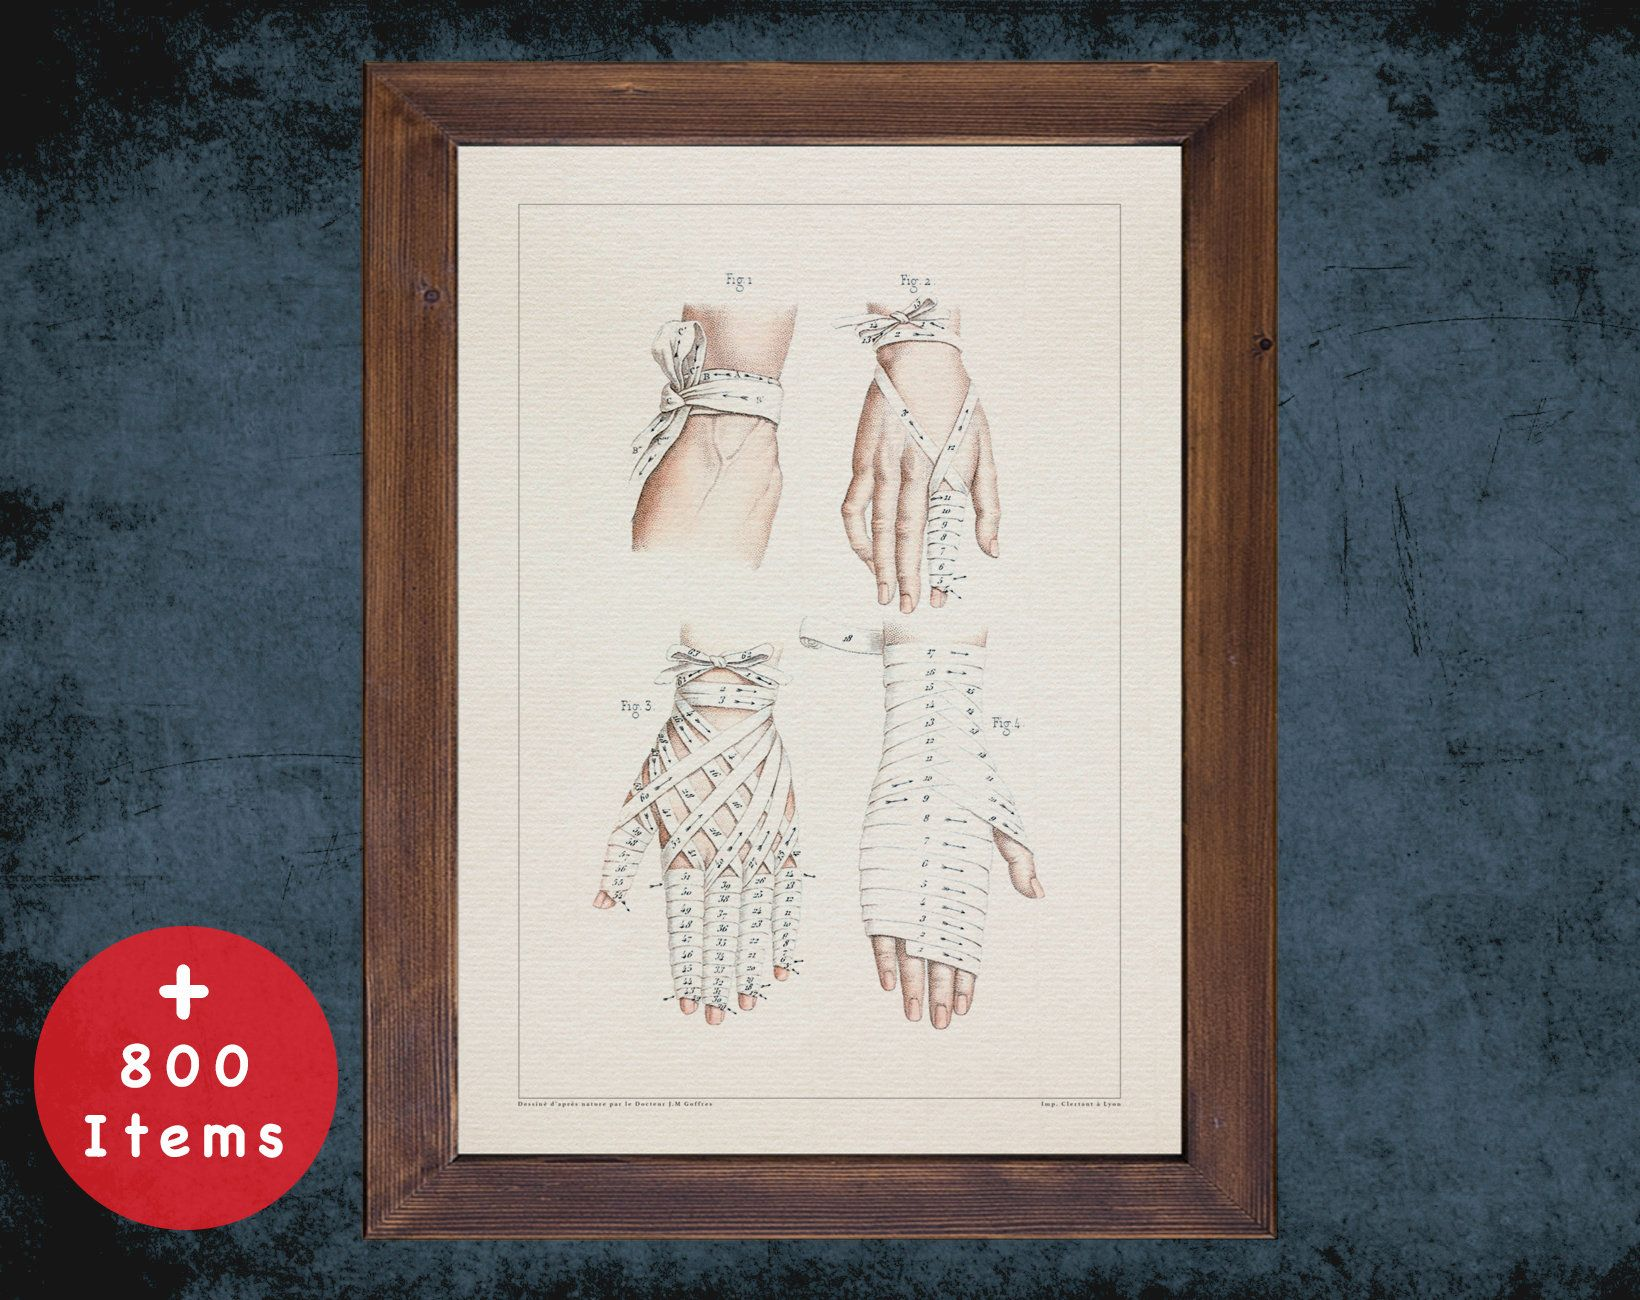 HAND FINGERS BANDAGE anatomy art print for medical student gift, Nurse and Nursing doctor office decor #medicalstudents